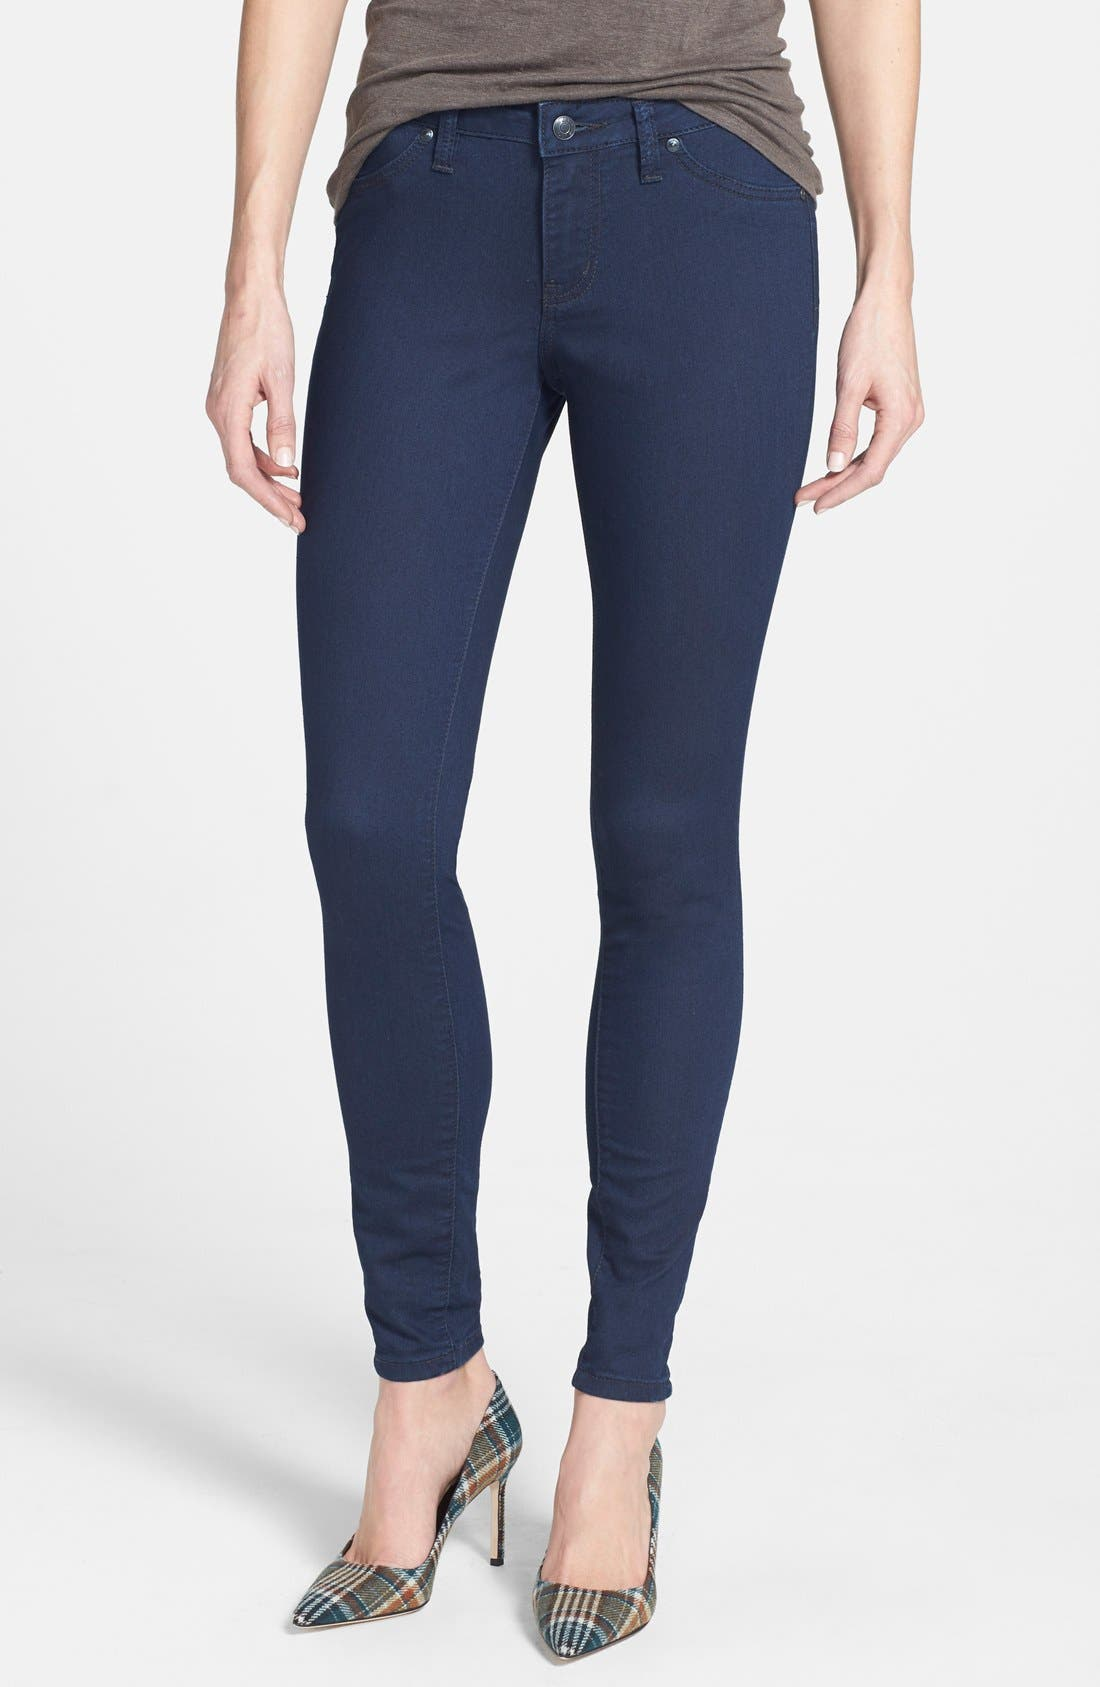 Main Image - Jag Jeans 'Cassie' Stretch Skinny Jeans